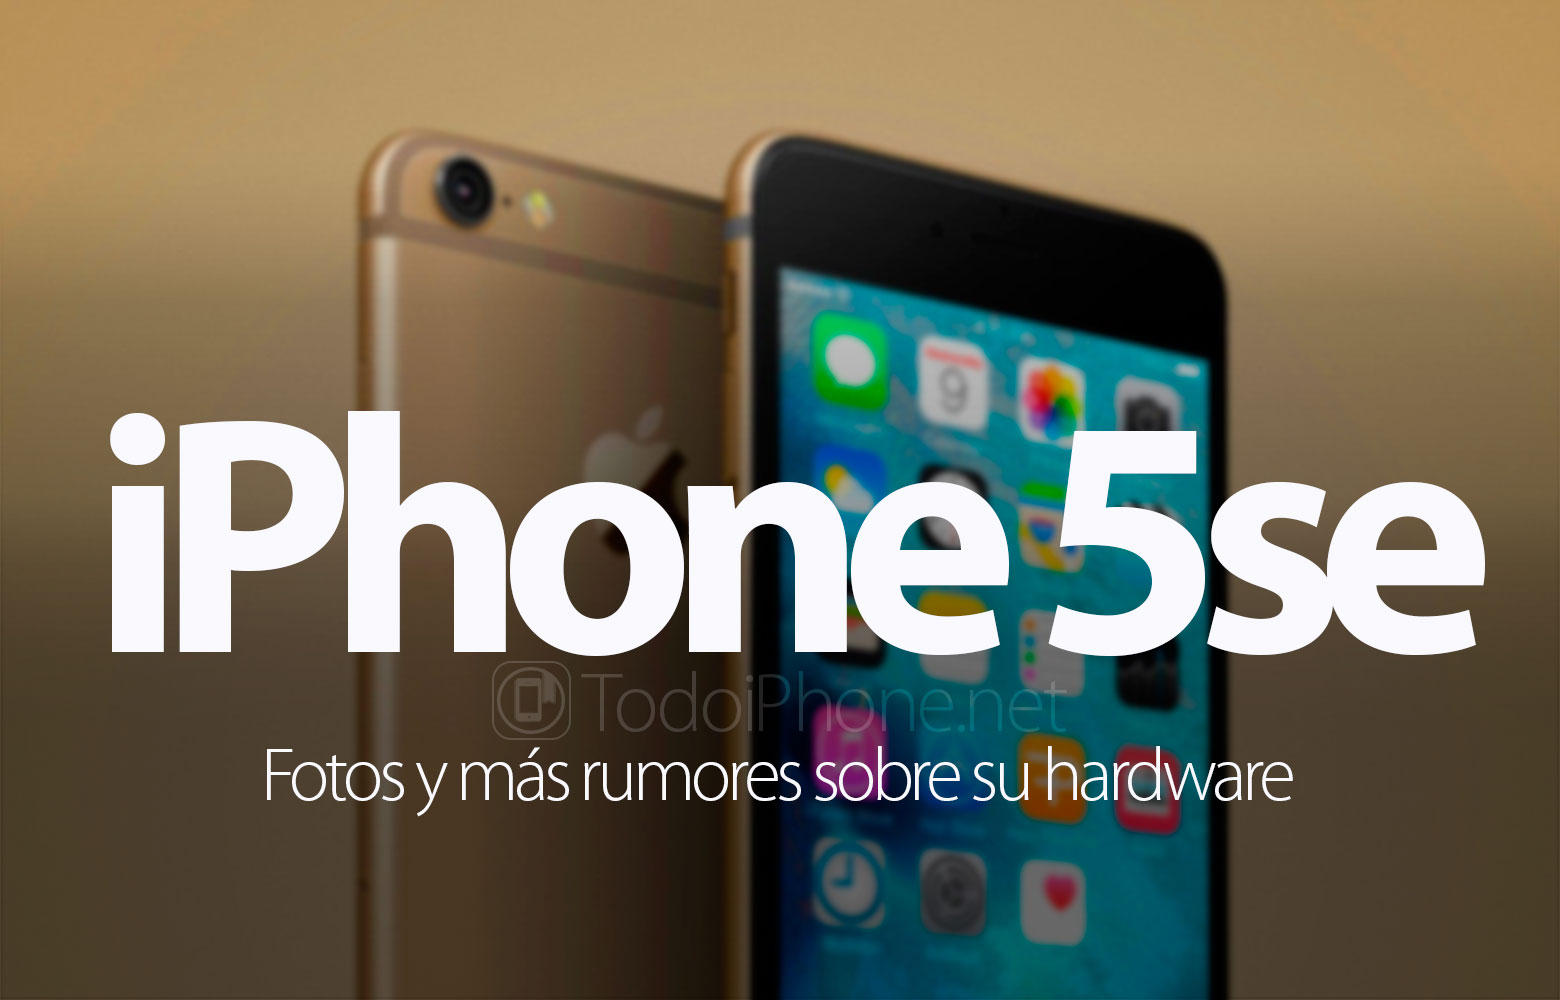 iphone-5se-foto-rumores-hardware